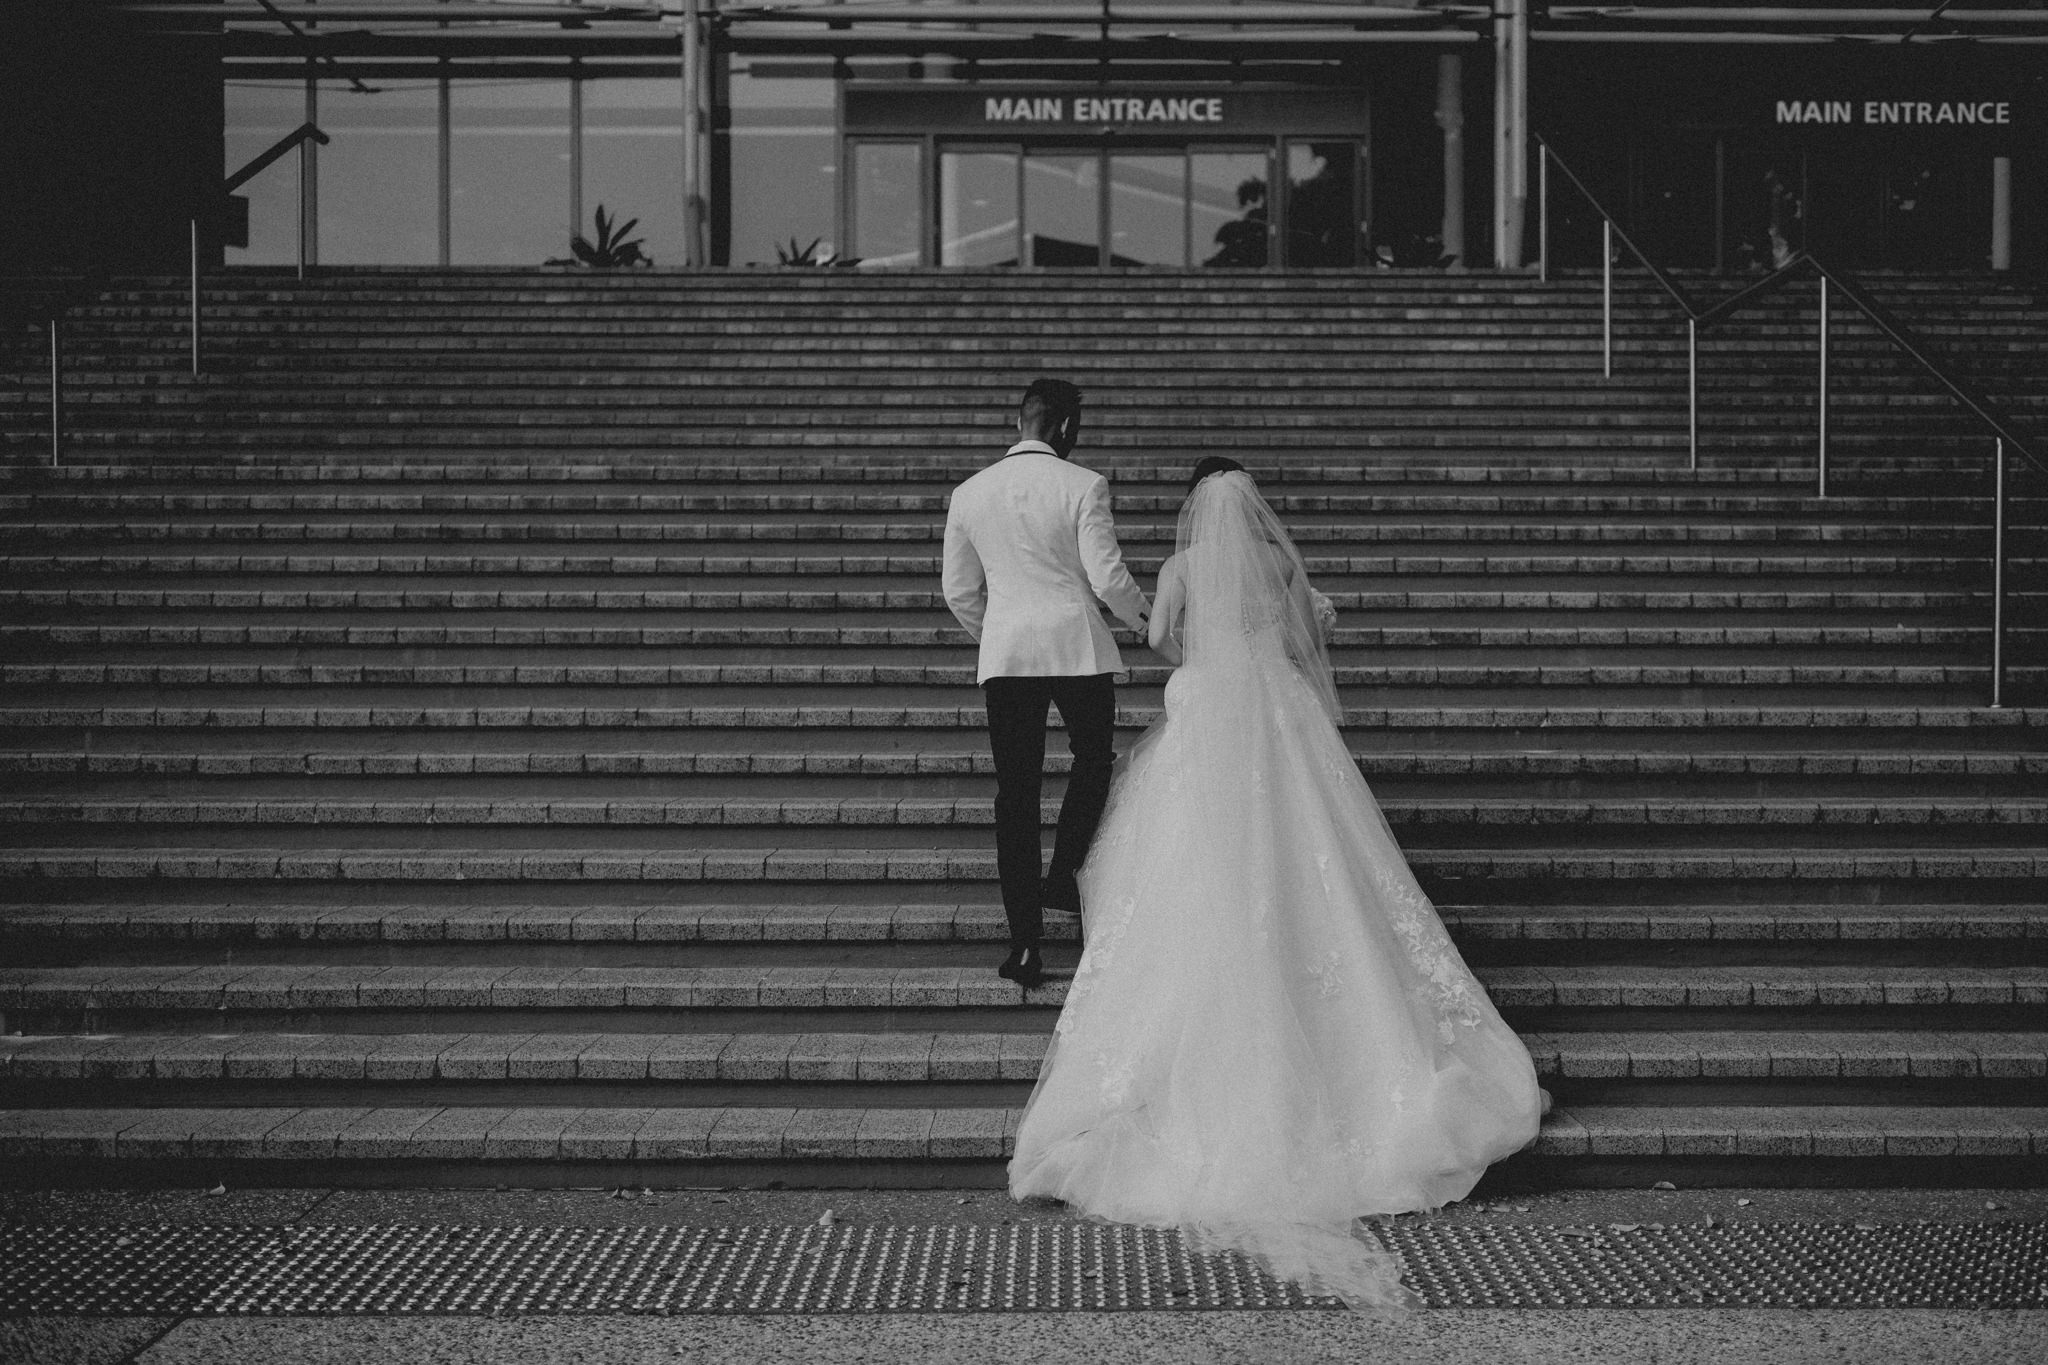 A bride and groom walk up a large staircase leading to doors